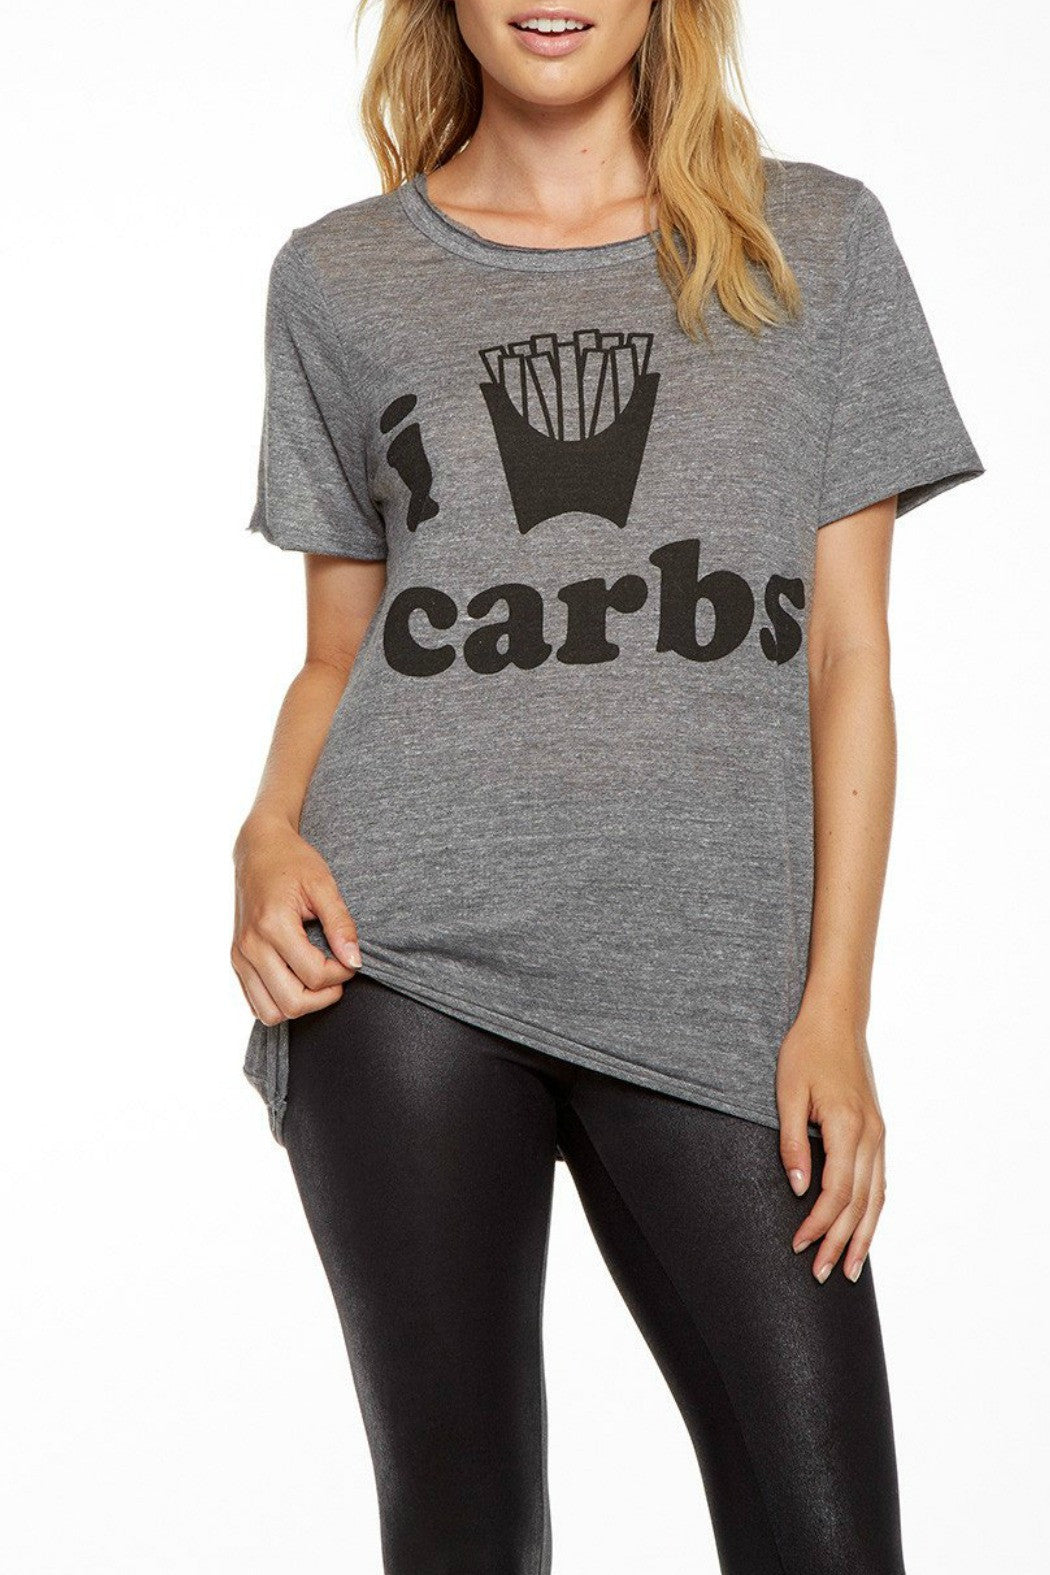 I Love Carbs Tee - R+D Hipster Emporium | Womens & Mens Clothing